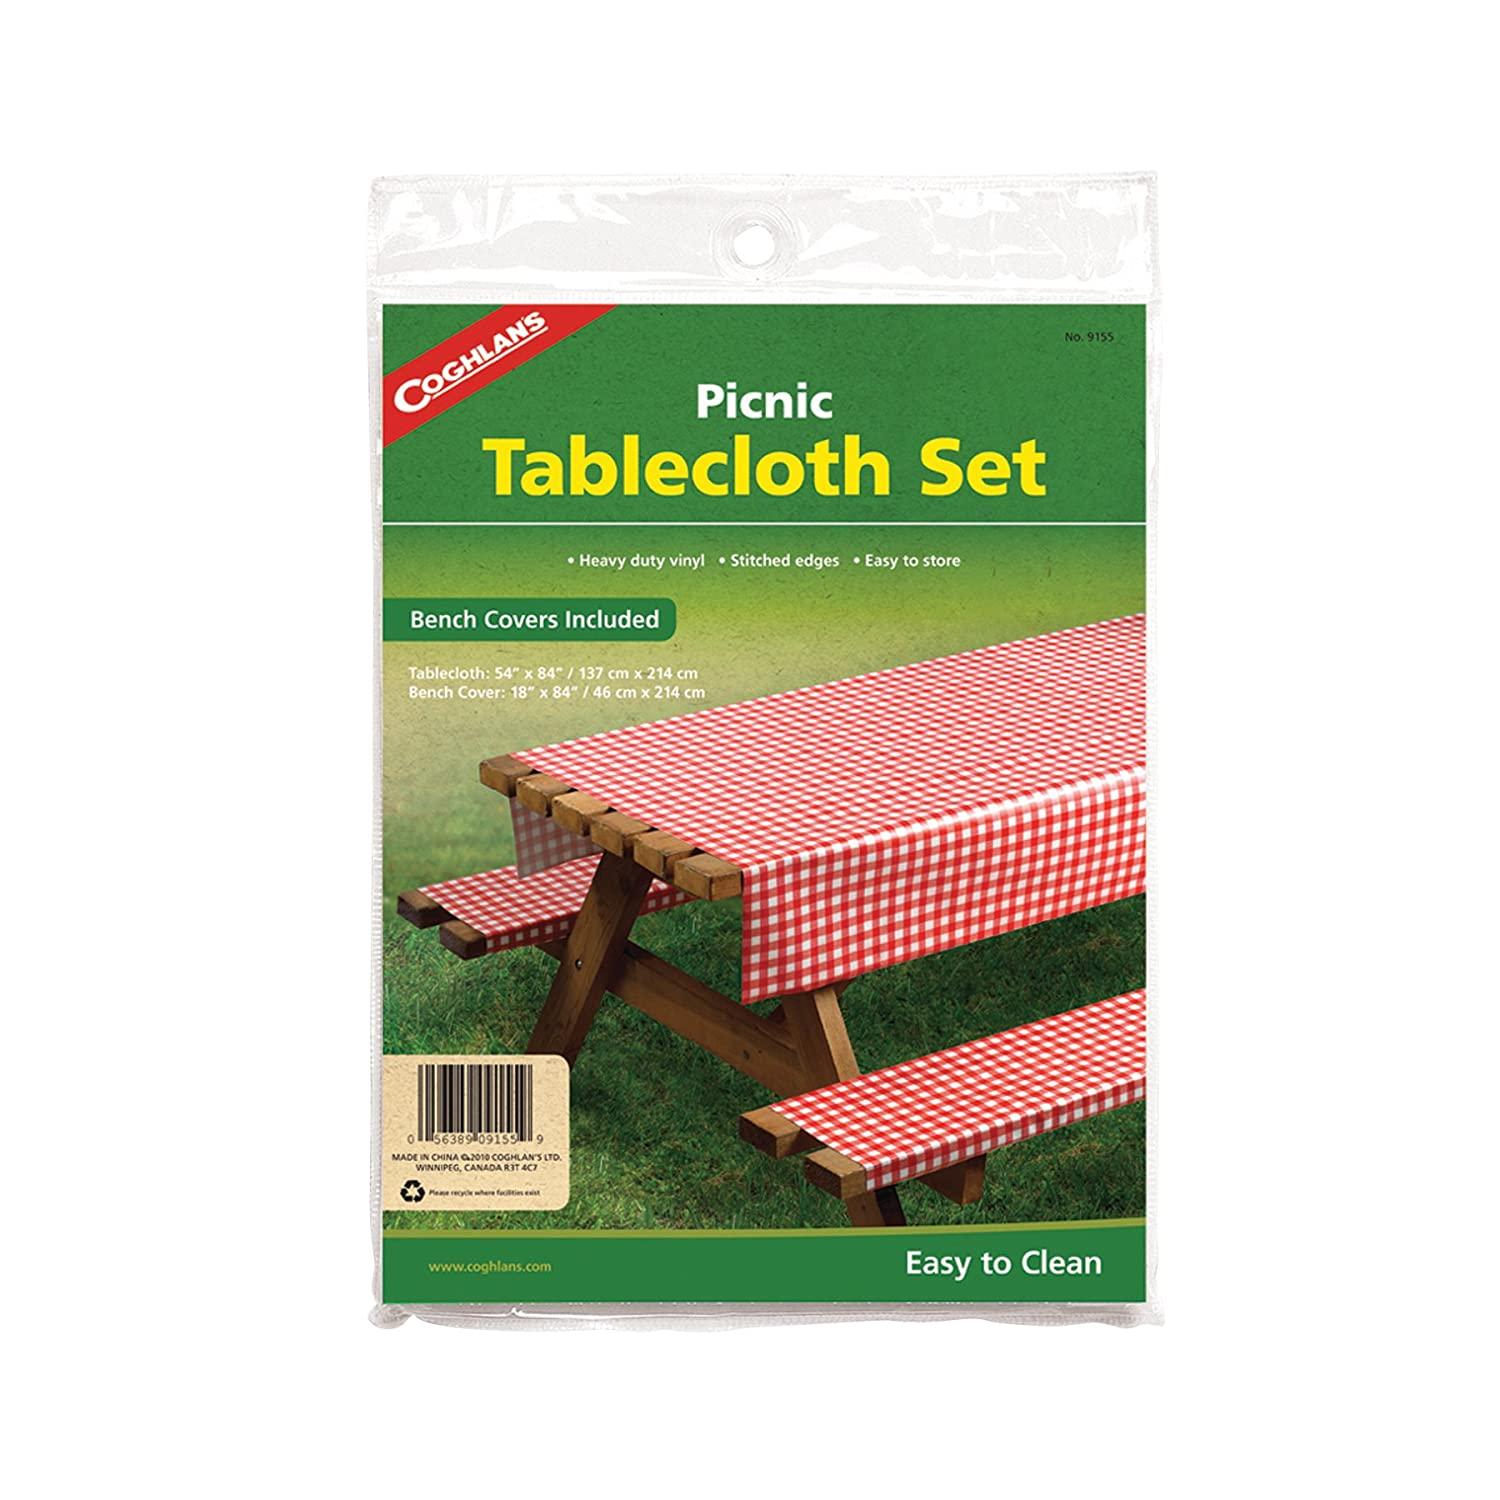 Amazon.com: Tables - Patio Furniture Covers: Patio, Lawn & Garden